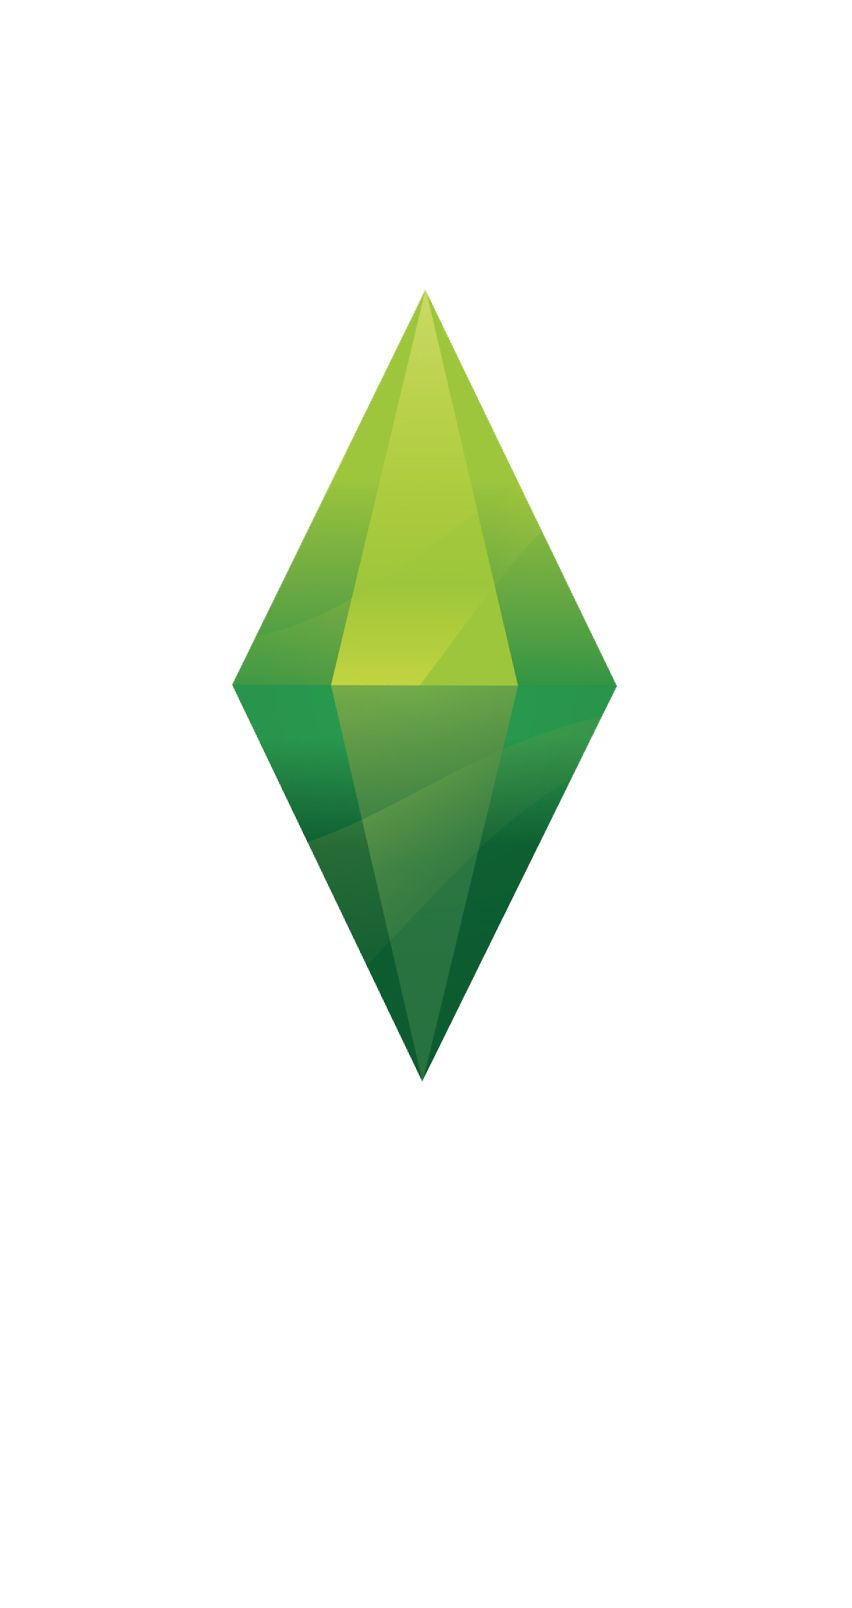 Plumbob thesims iPhone 456 Wallpaper Check out more 852x1608